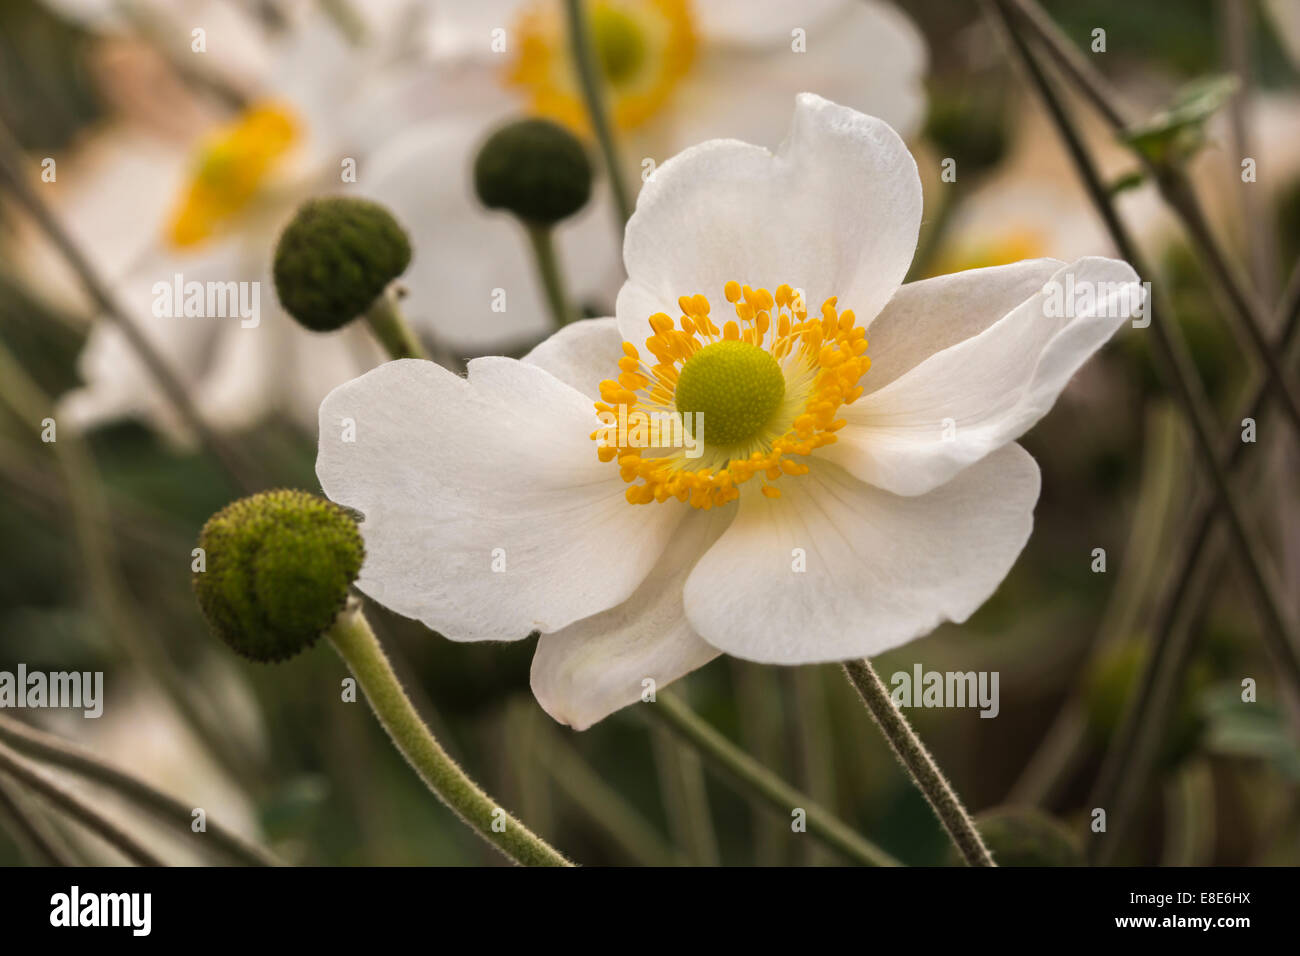 Fantastic white flowers with yellow center photos wedding and white with yellow center flower choice image flower decoration ideas mightylinksfo Images